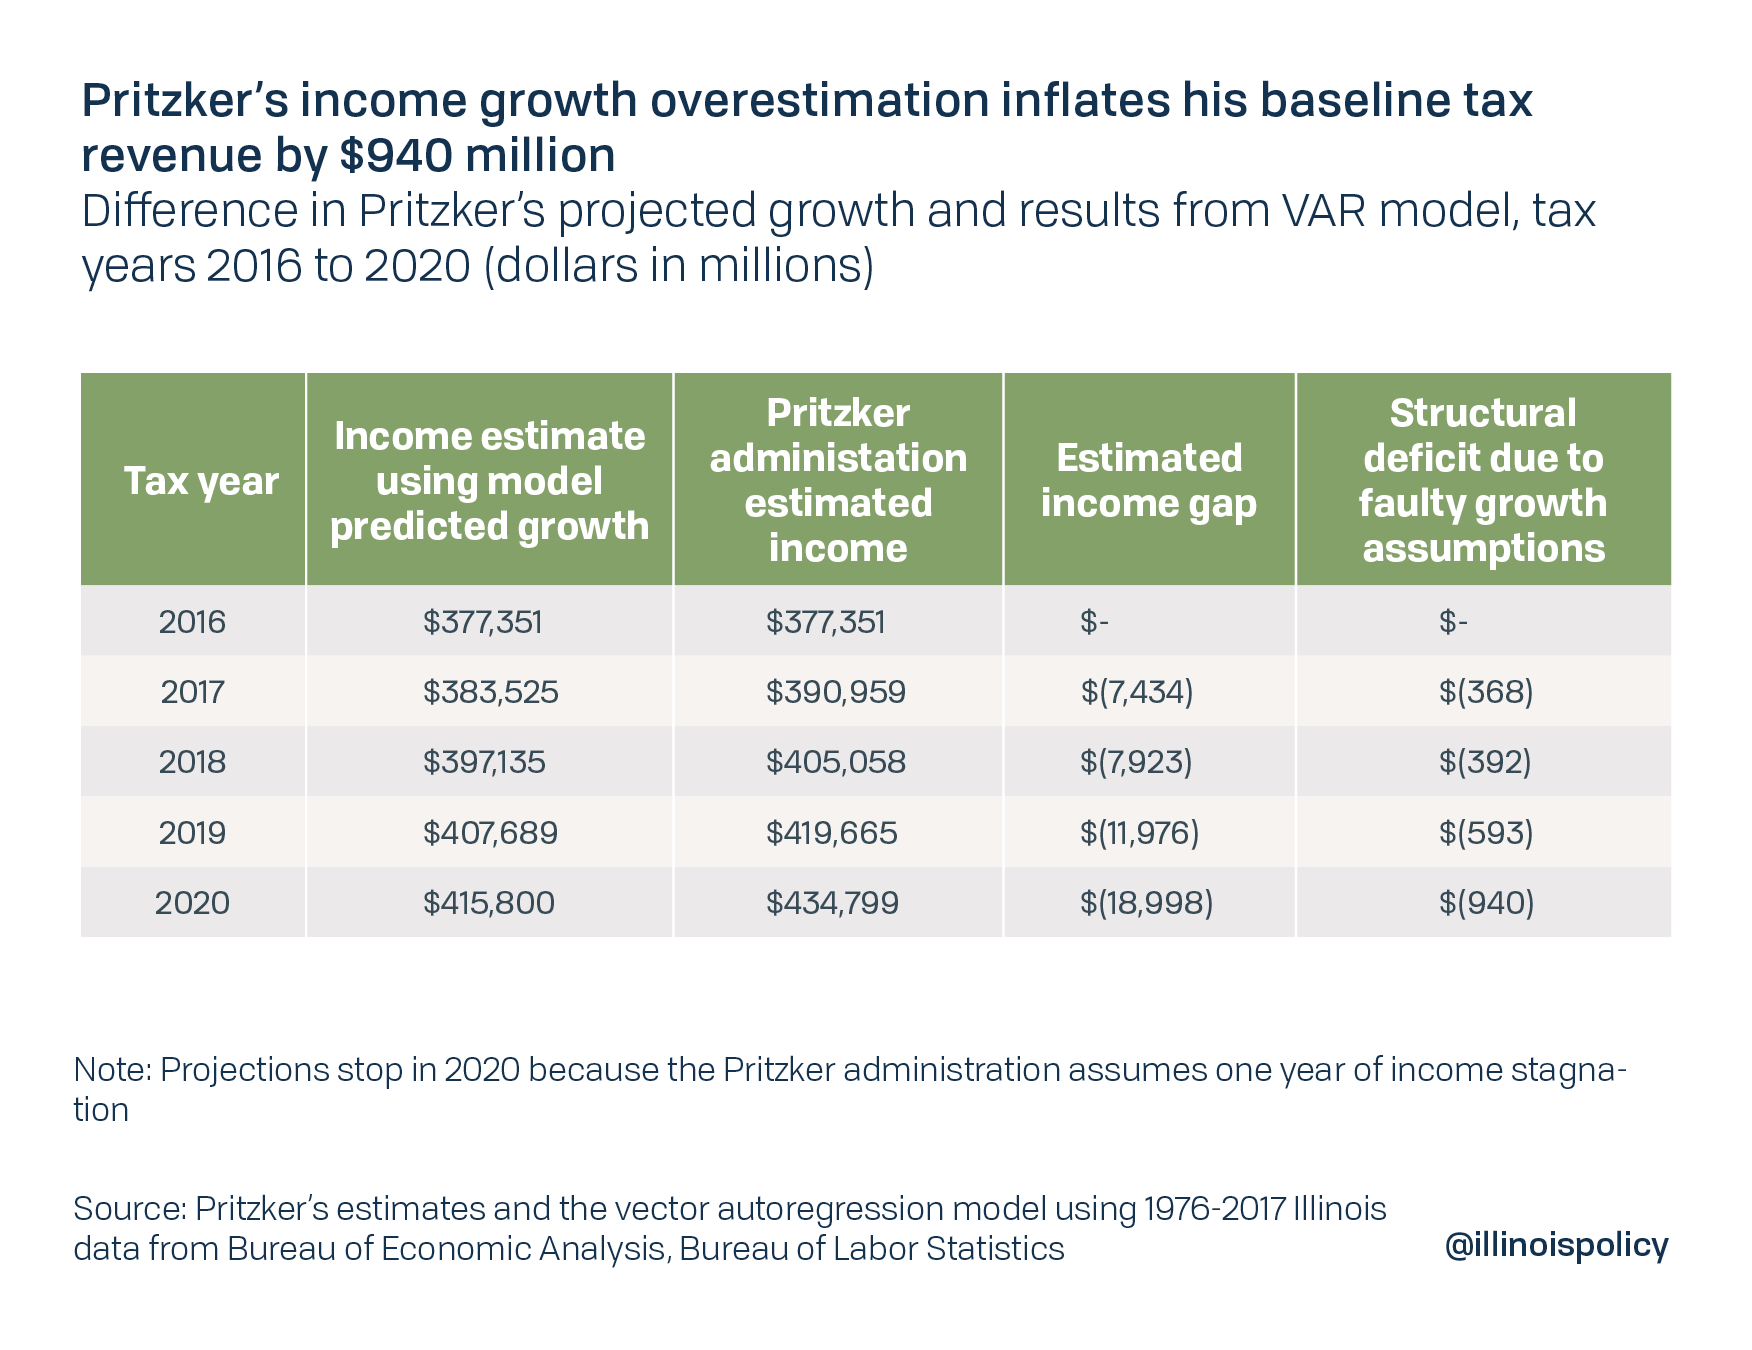 Pritzker's income growth overestimation inflates his baseline tax revenue by $940 million